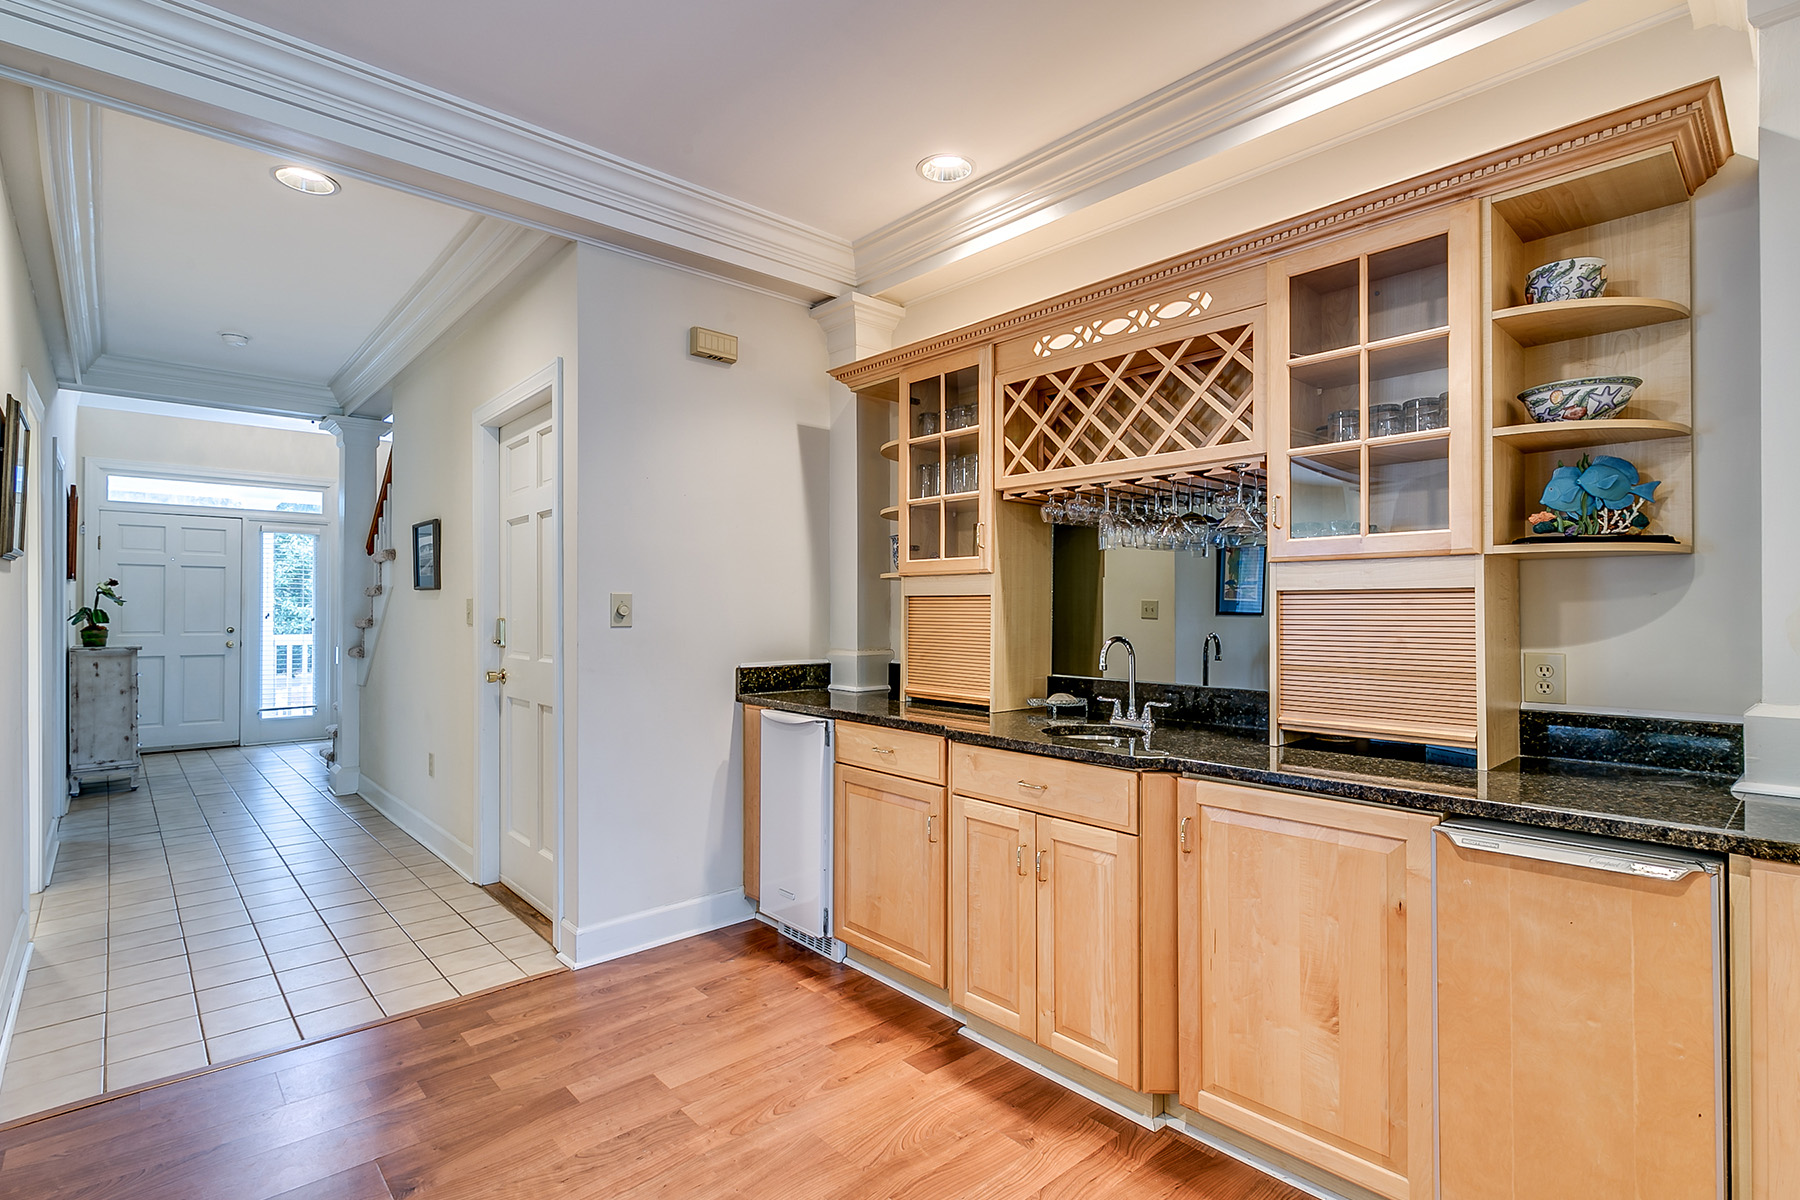 Additional photo for property listing at 104 Collins Meadow Dr., Georgetown, SC 29440 104  Collins Meadow Dr. 15 Georgetown, South Carolina 29440 United States